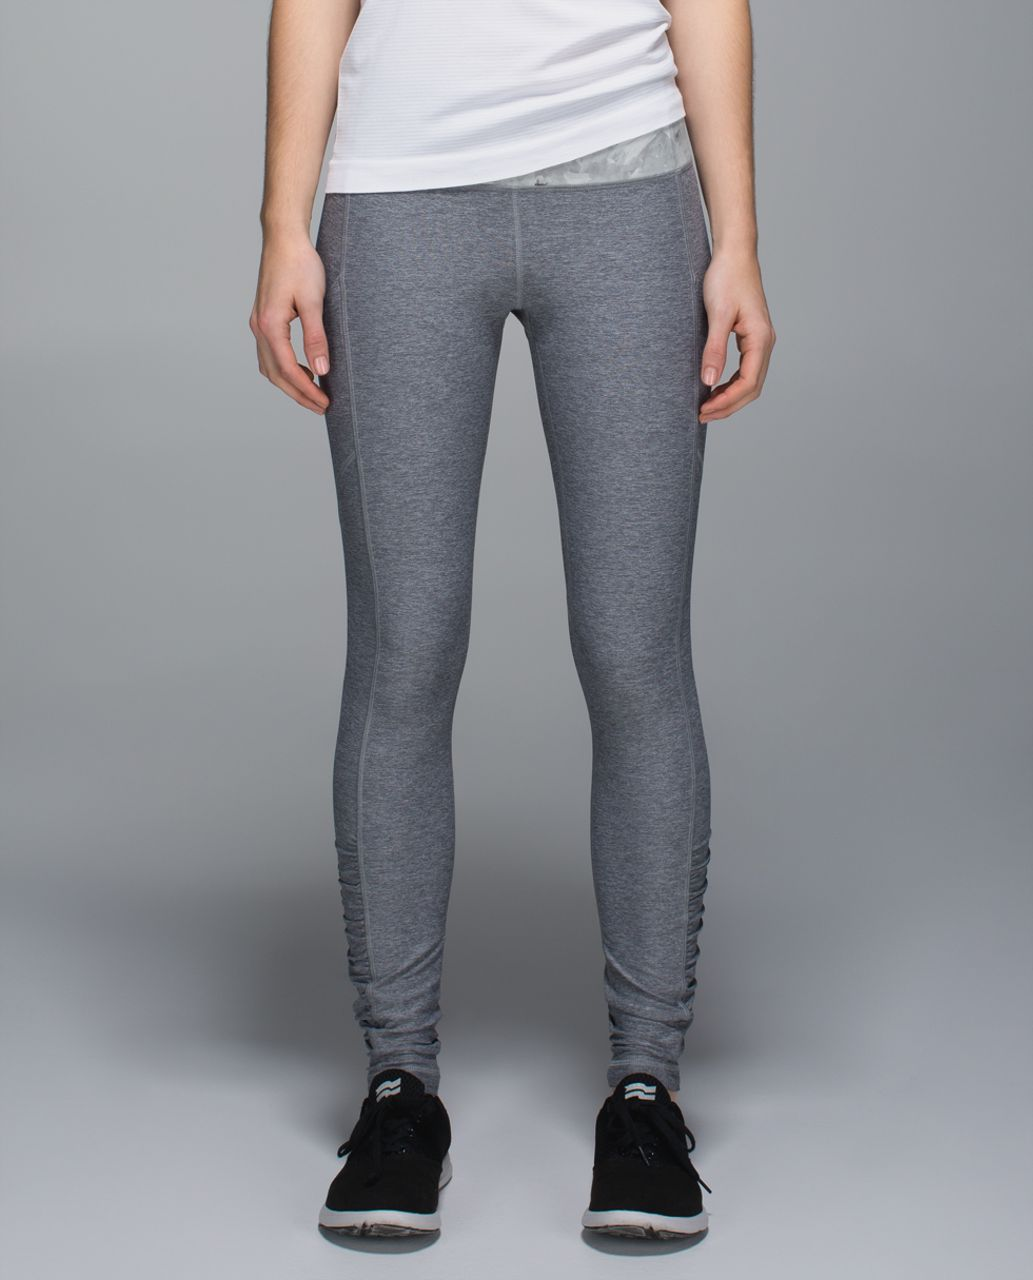 Lululemon Speed Tight III *All Luxtreme - Heathered Slate / Mini Blushed Illusion White Multi